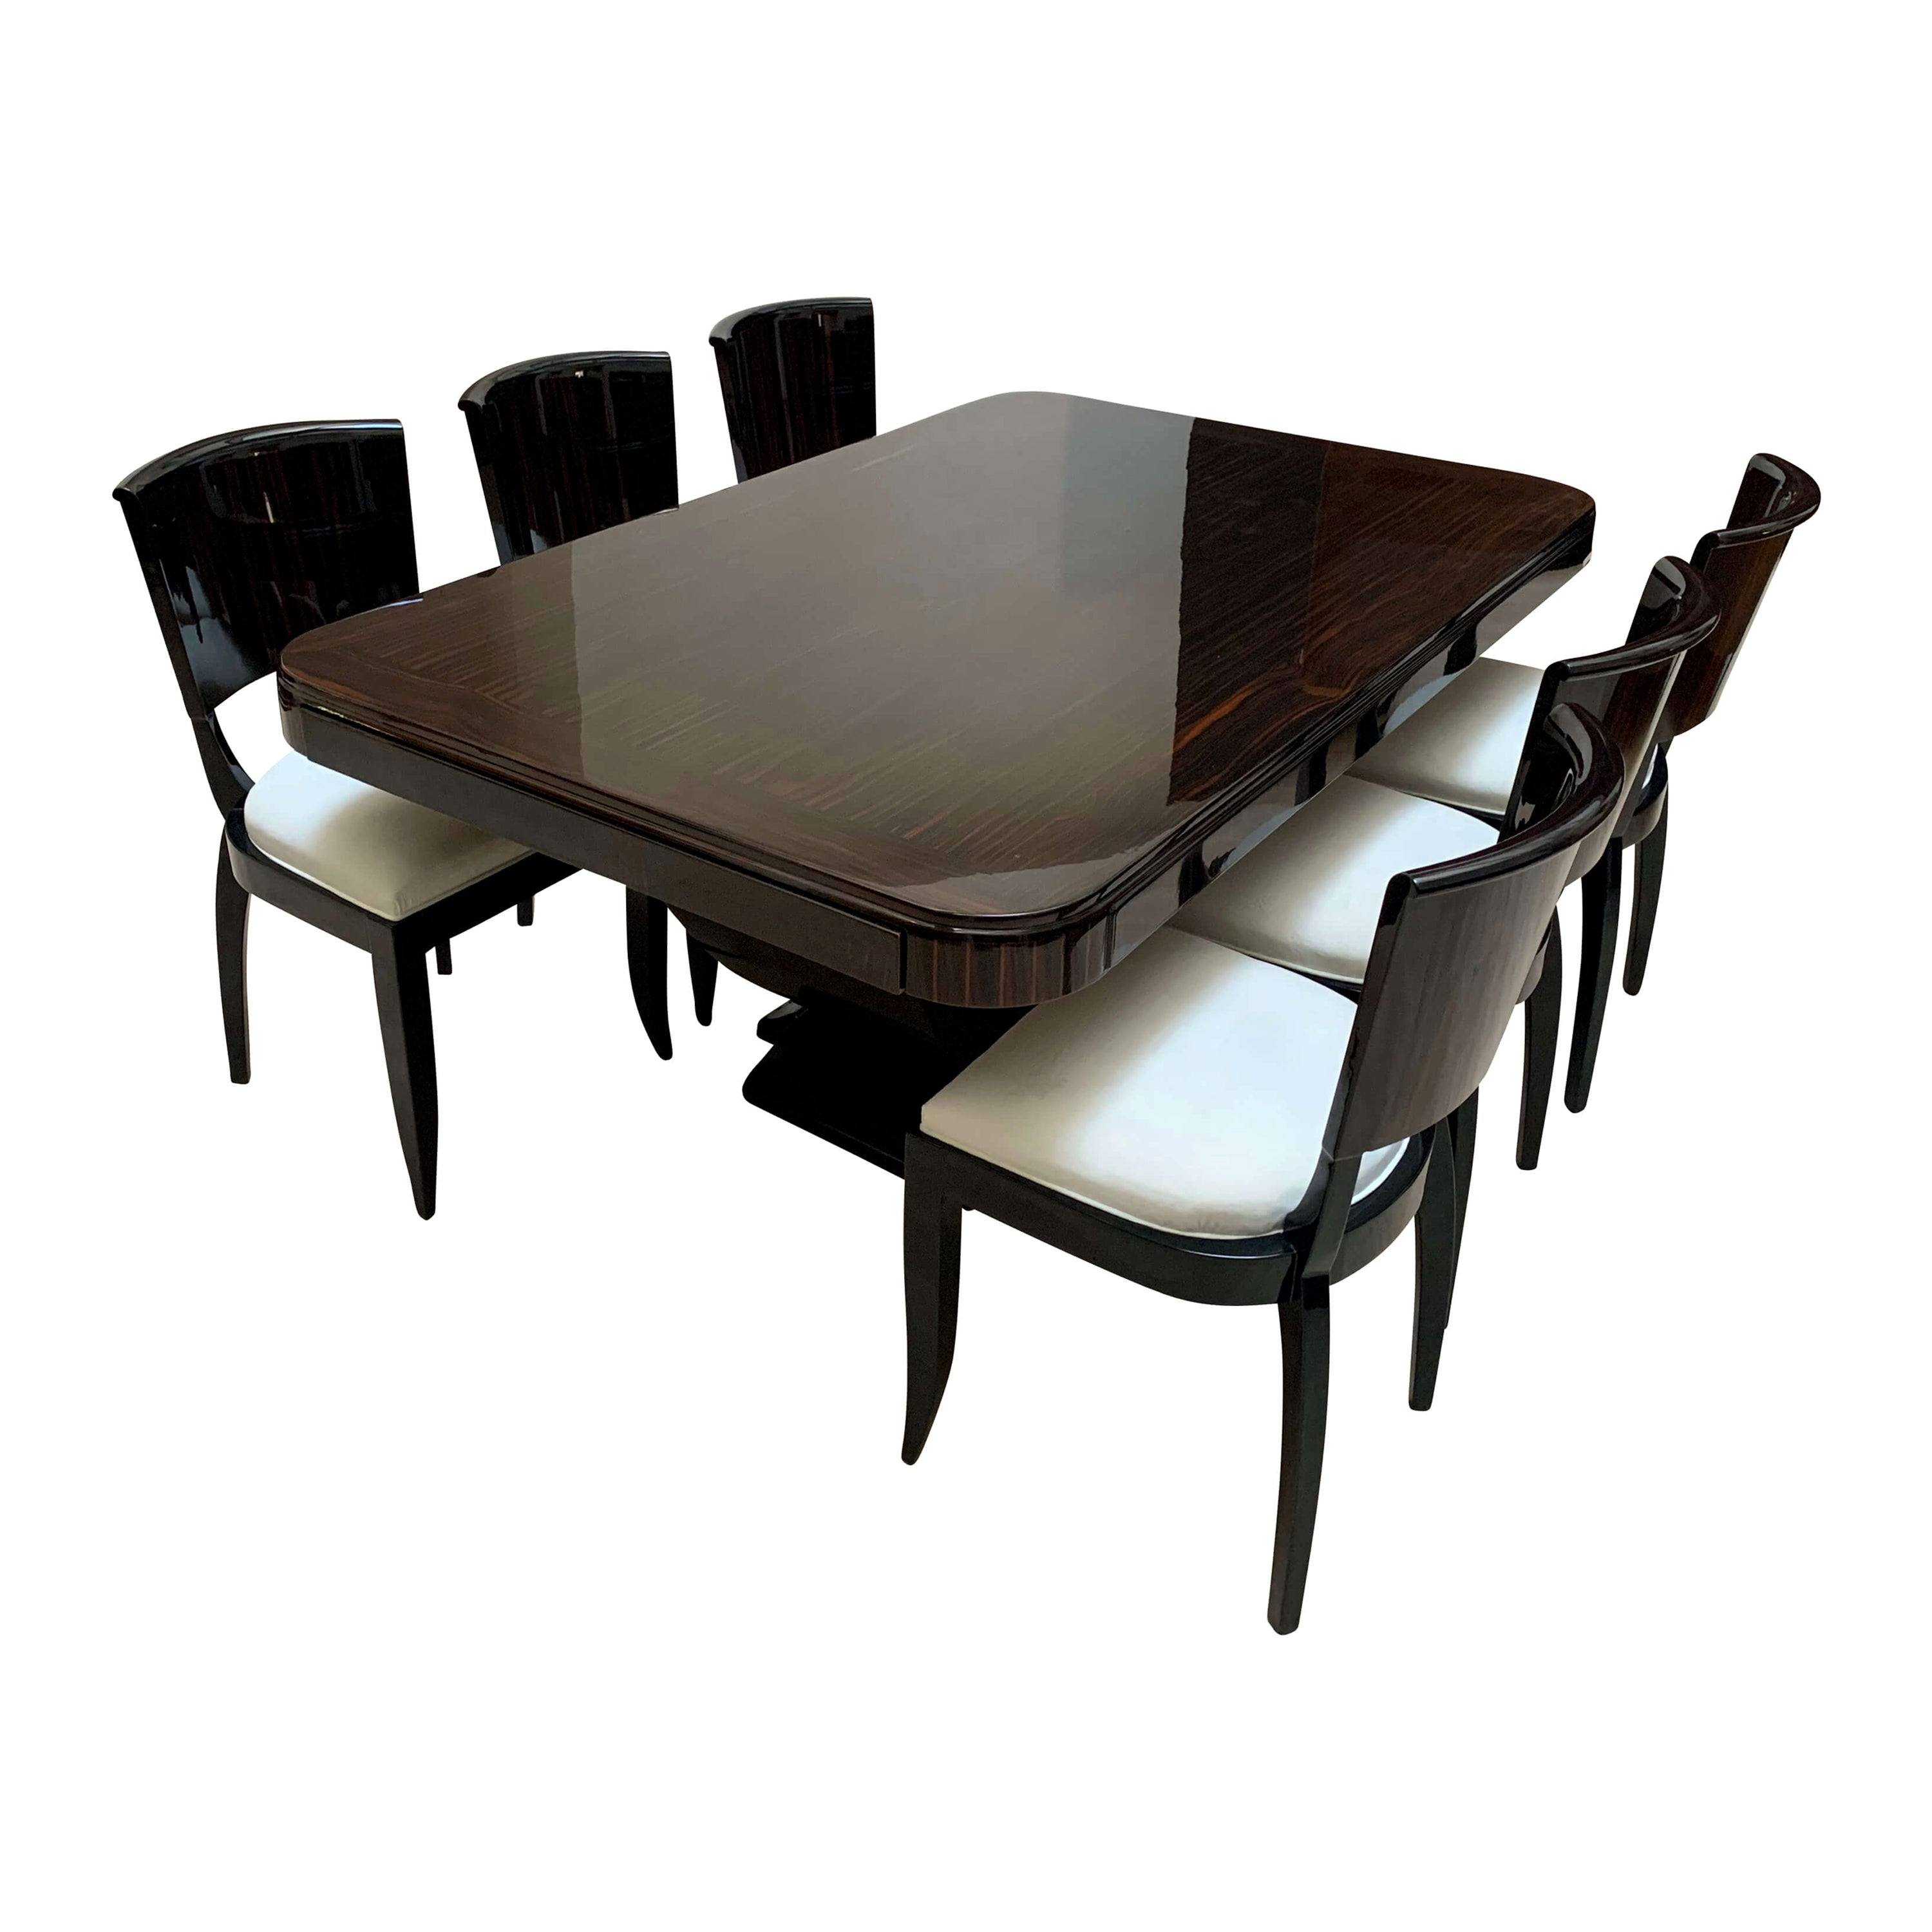 Expandable Art Deco Dining Room Set in Macassar, France circa 1925